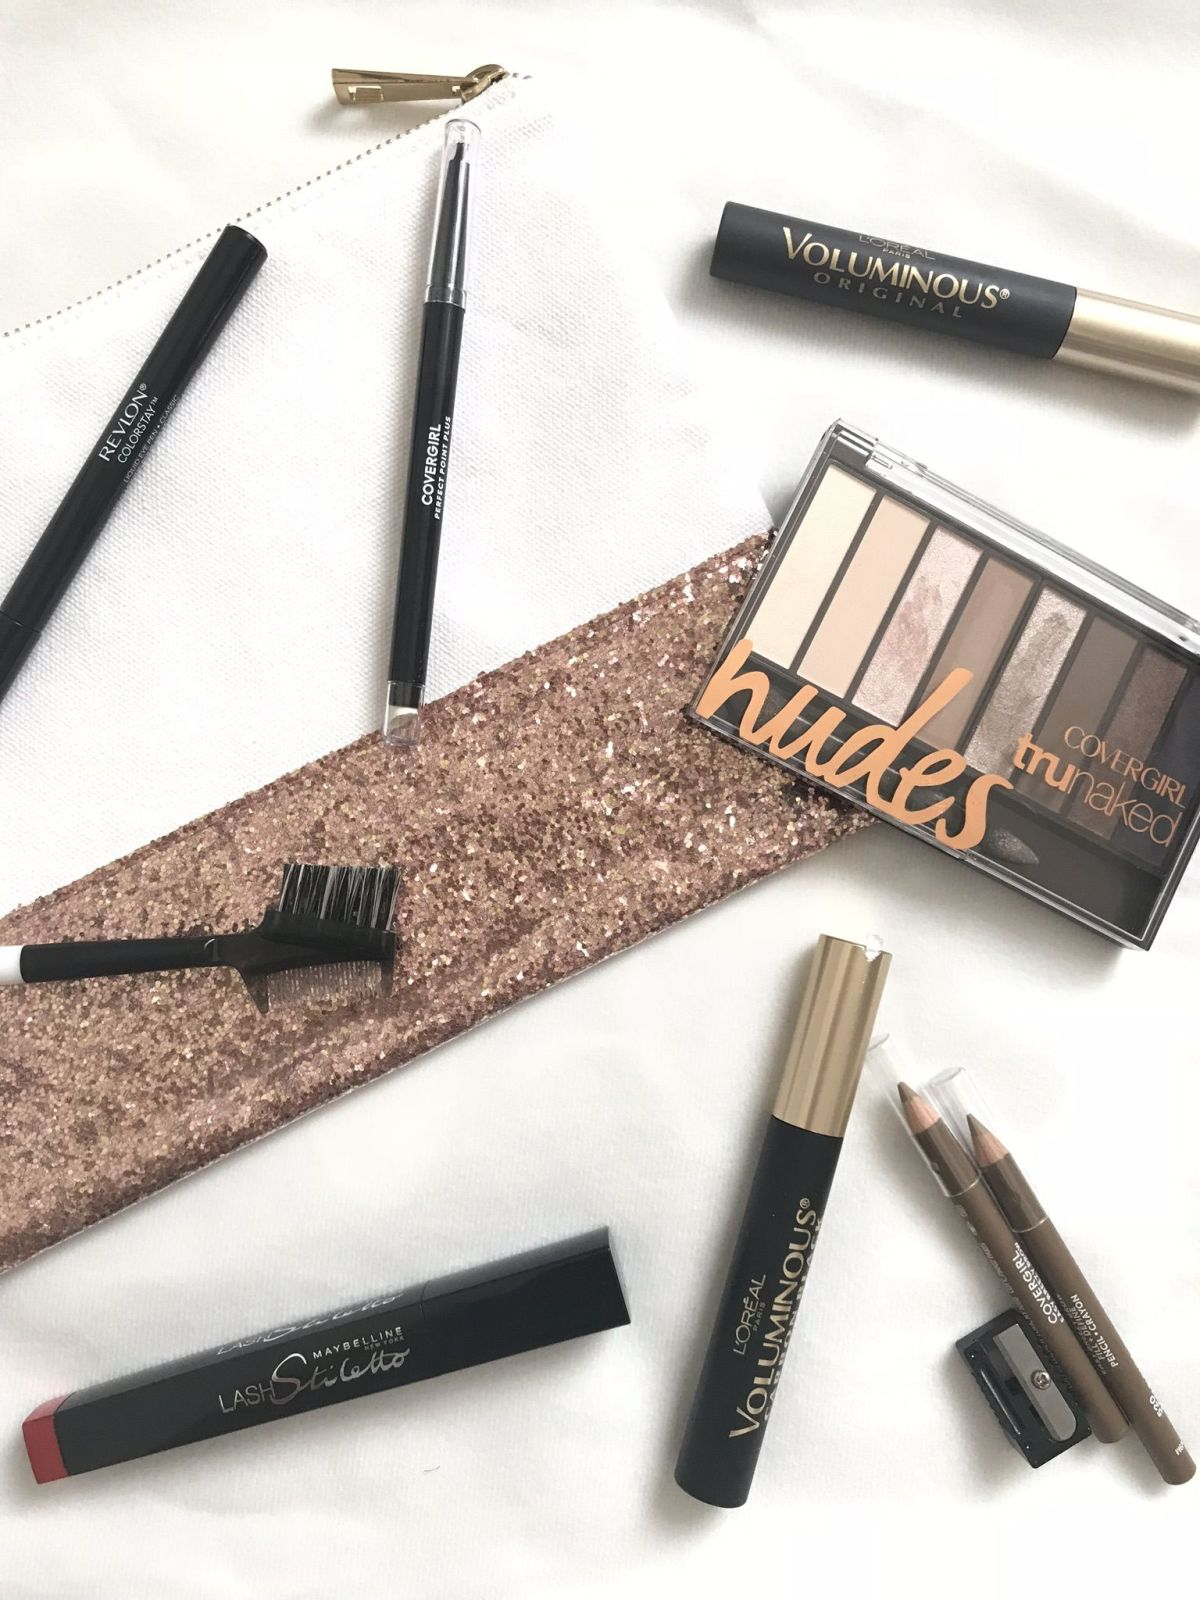 8 Best Drugstore Eye Makeup Products How We Do